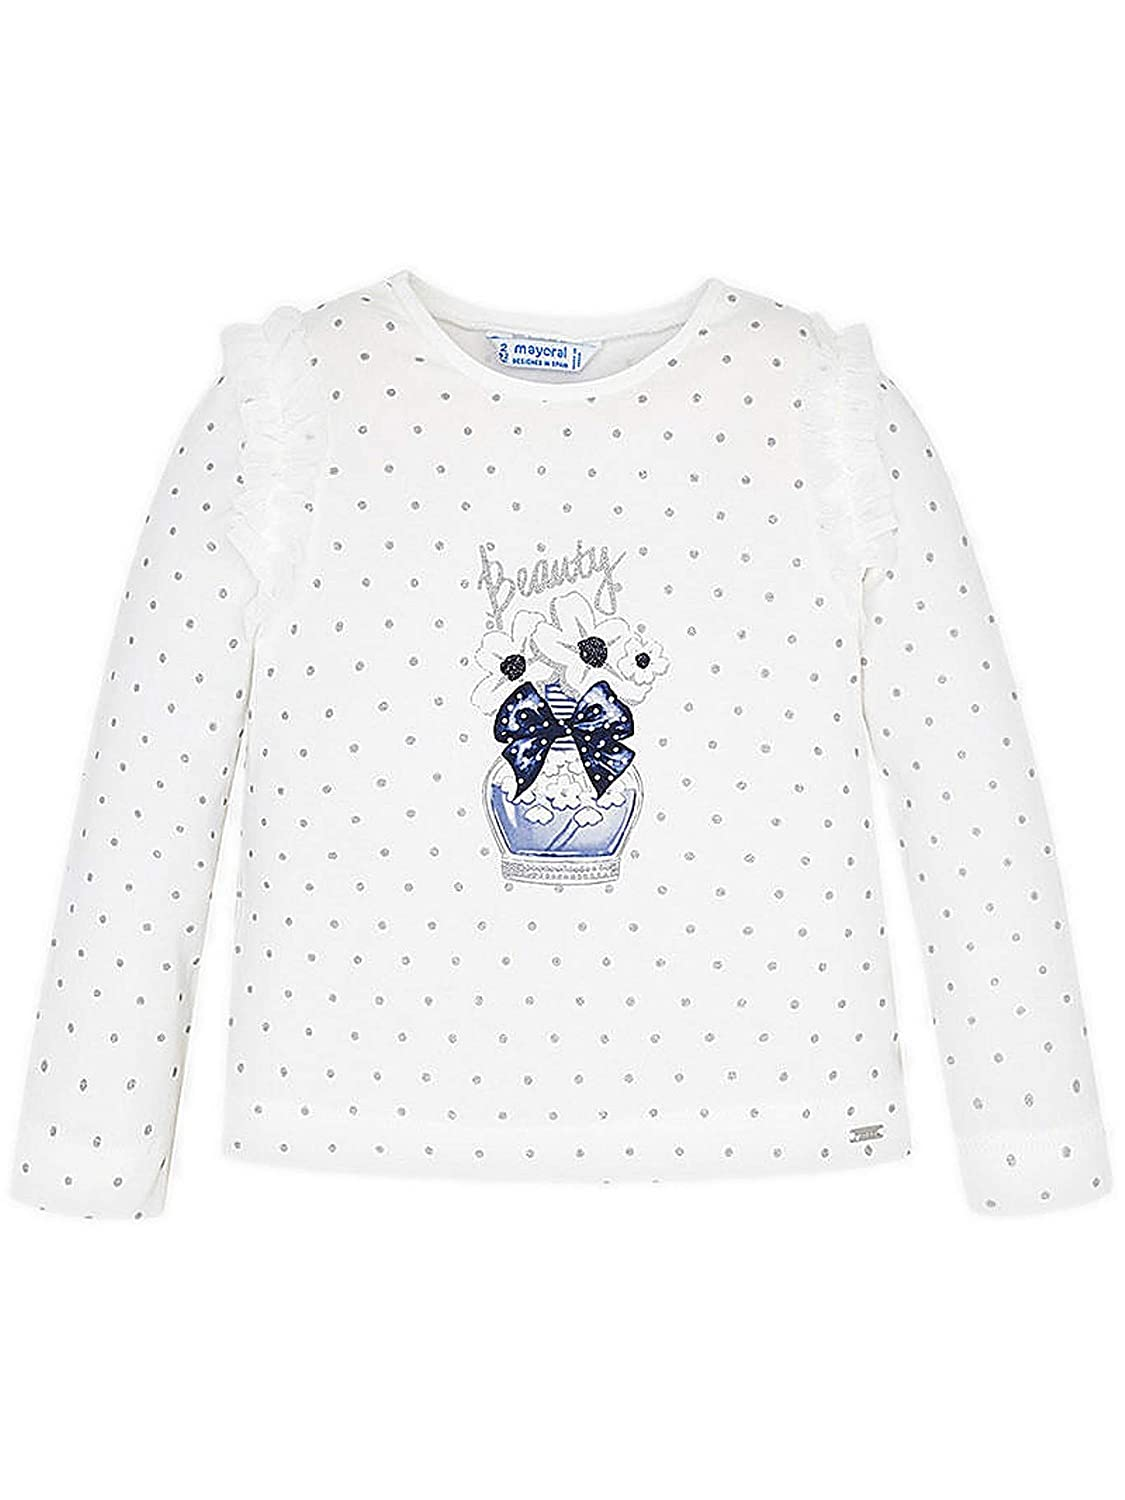 Mayoral L//s t-Shirt for Girls 4007 Navy